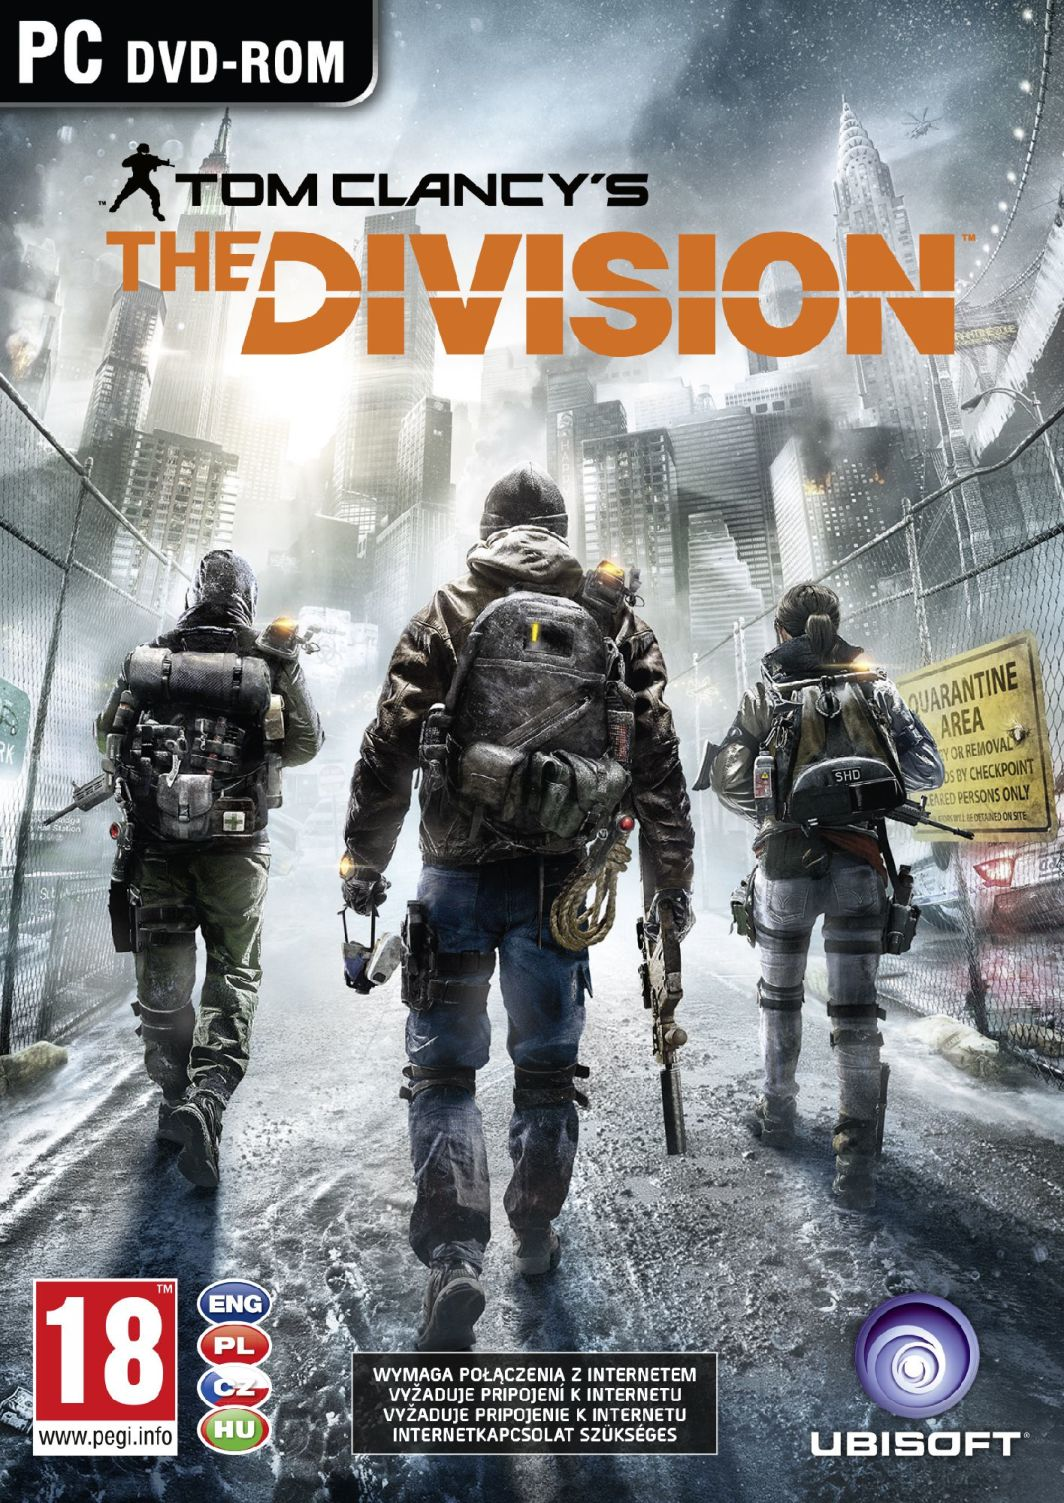 Tom Clancy's The Division PC 1